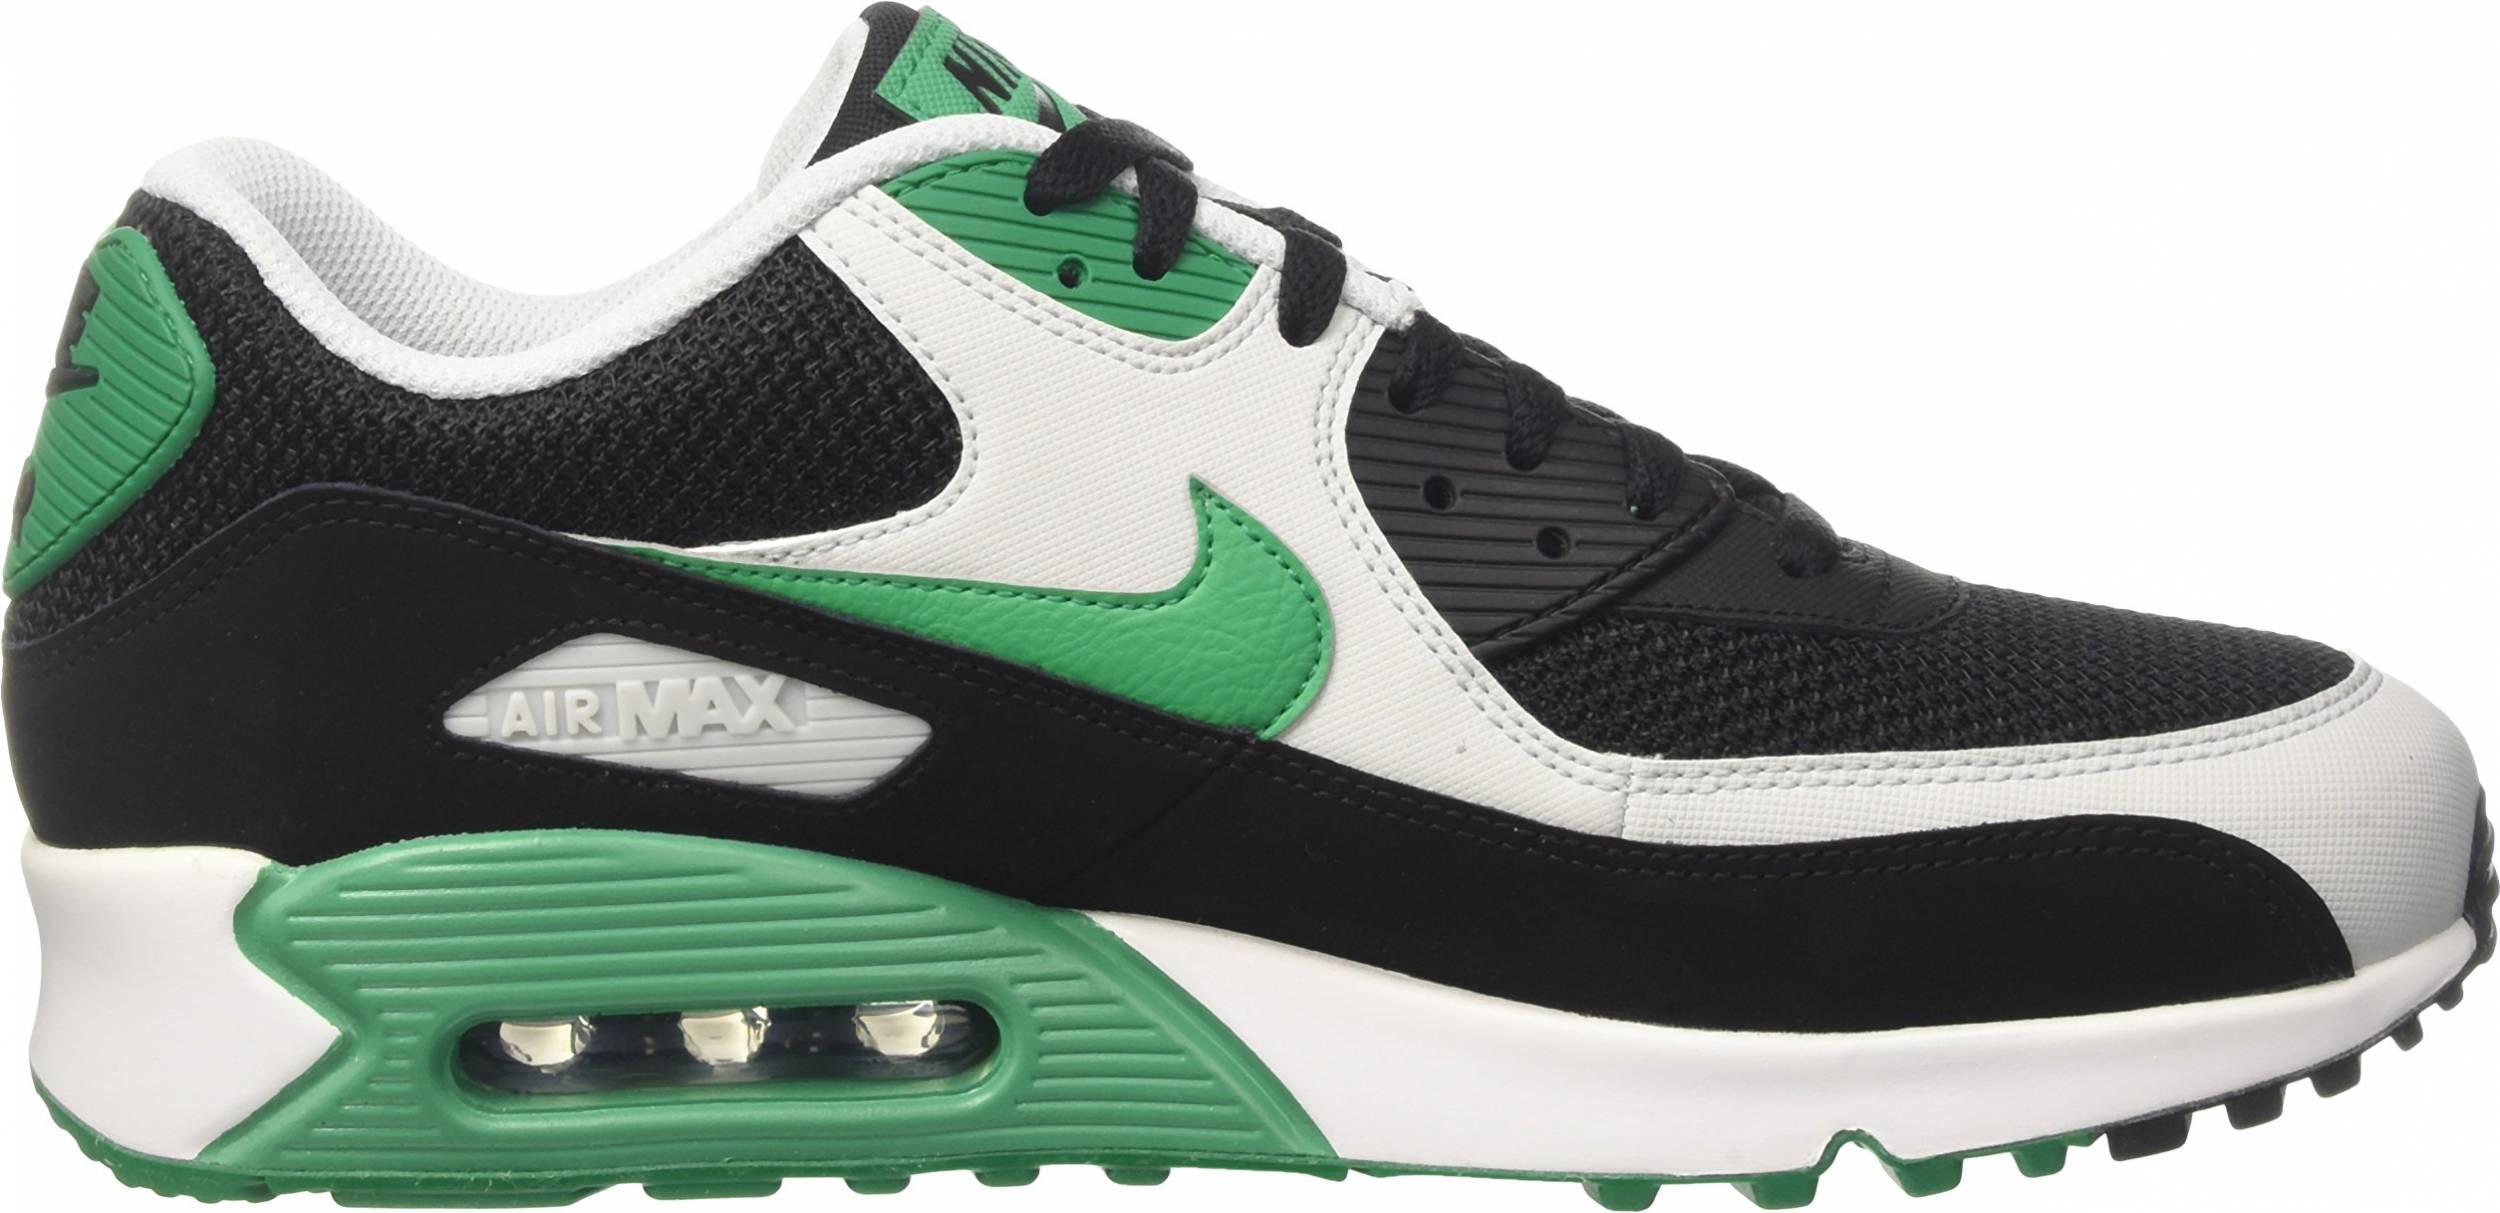 Save 41% on Nike Air Max 90 Sneakers